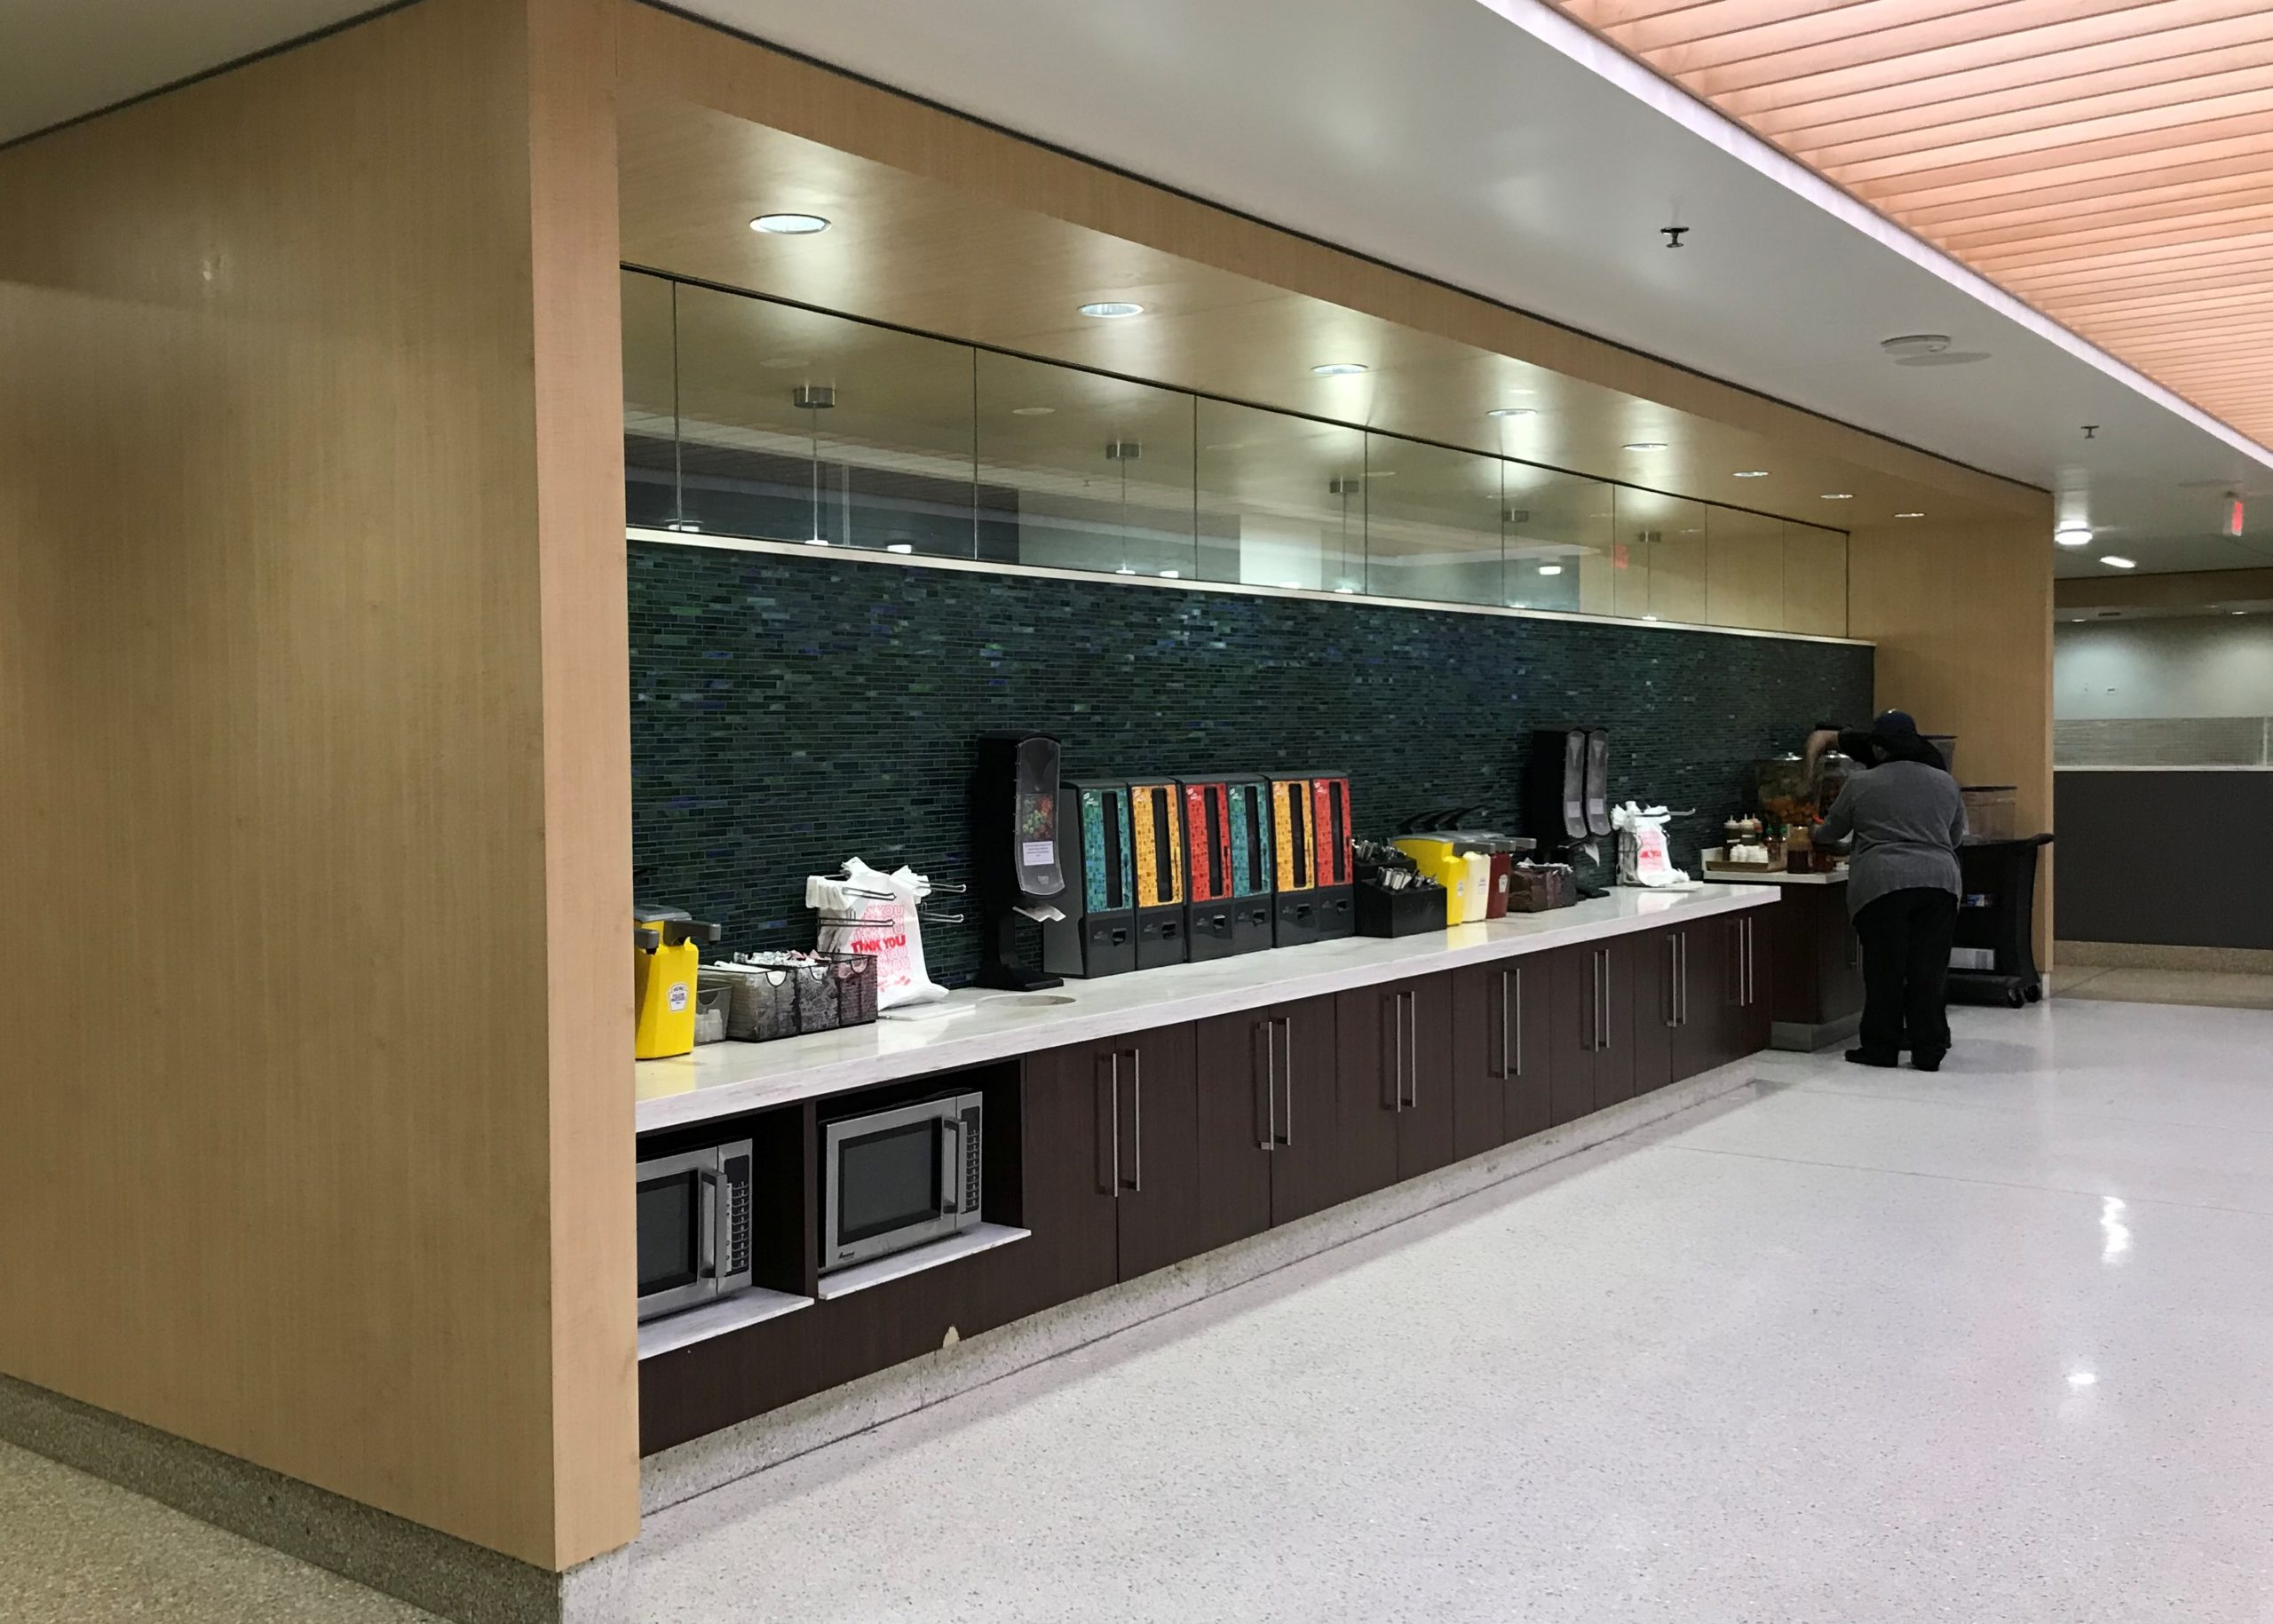 grocery checkout, Food Service, cash wrap, wall protection, venforma, ven4ma